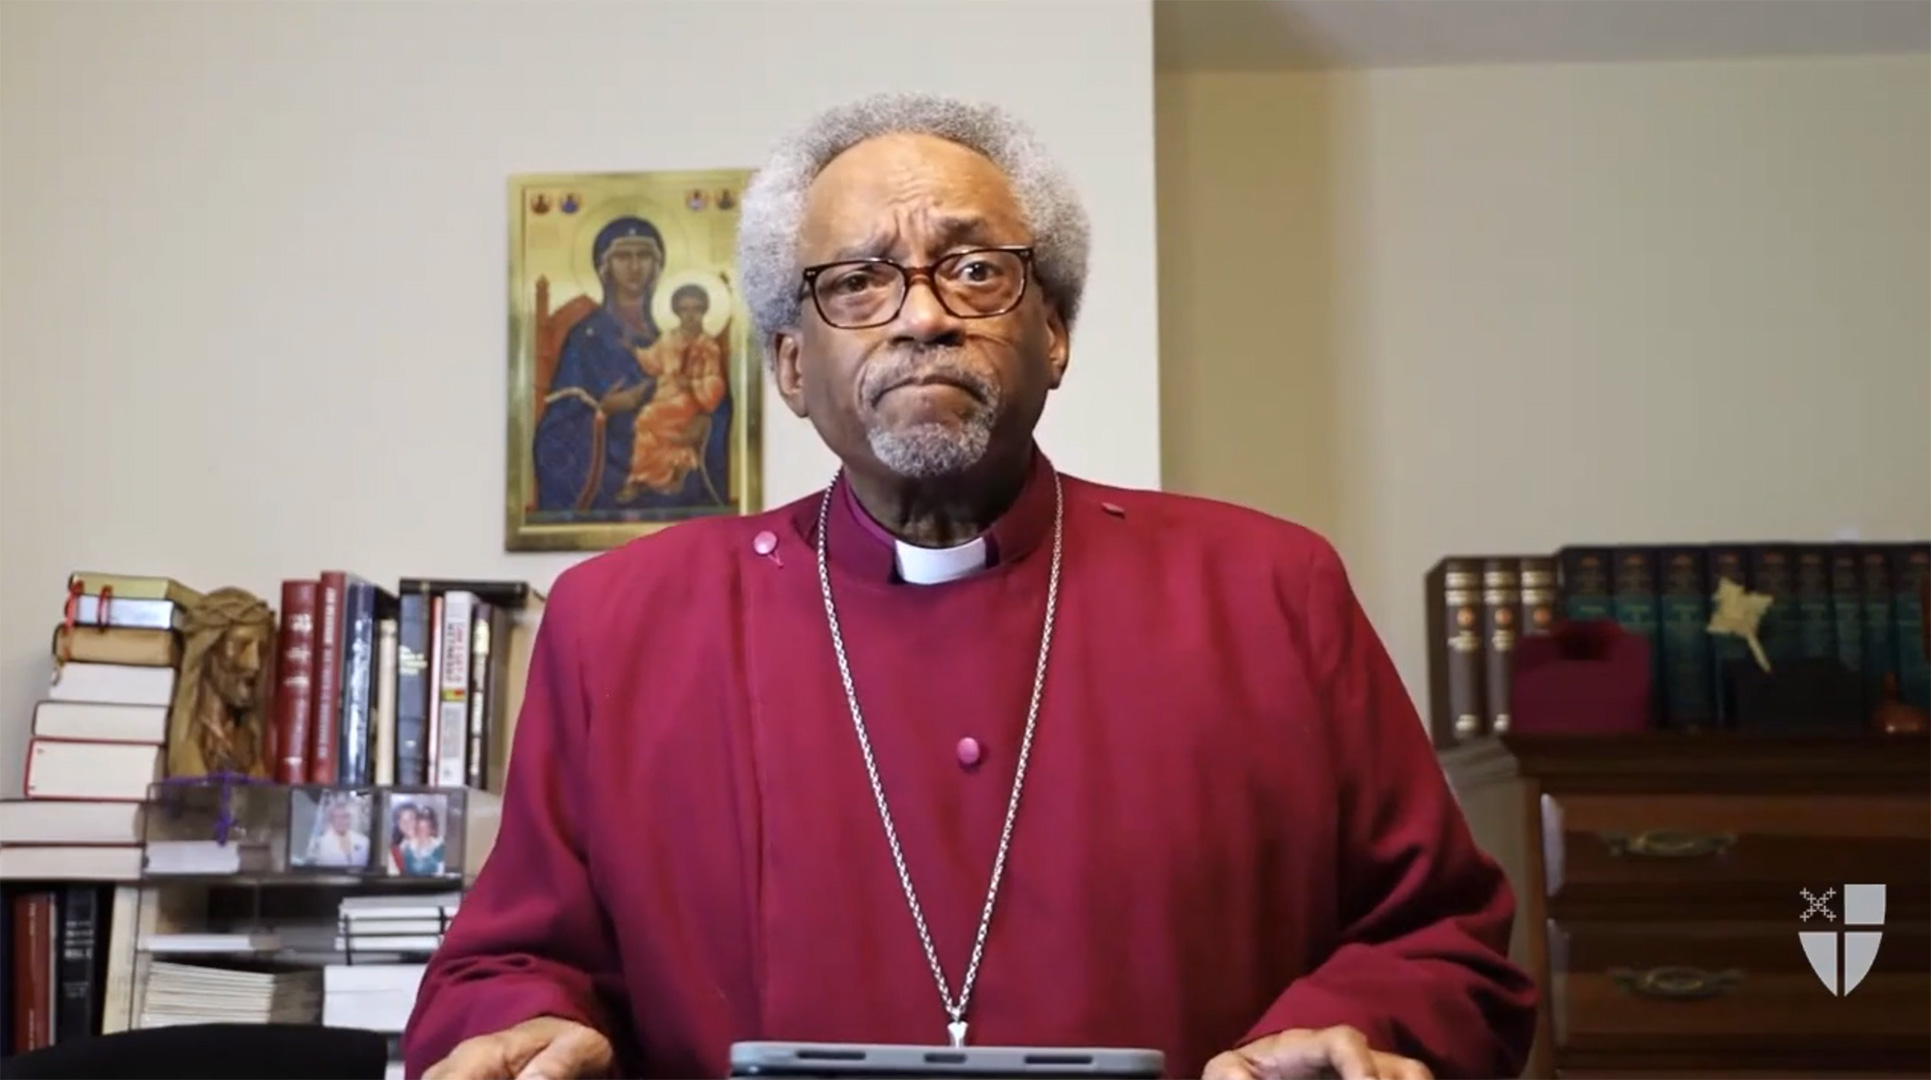 A Word to The Church from Presiding Bishop Michael Curry